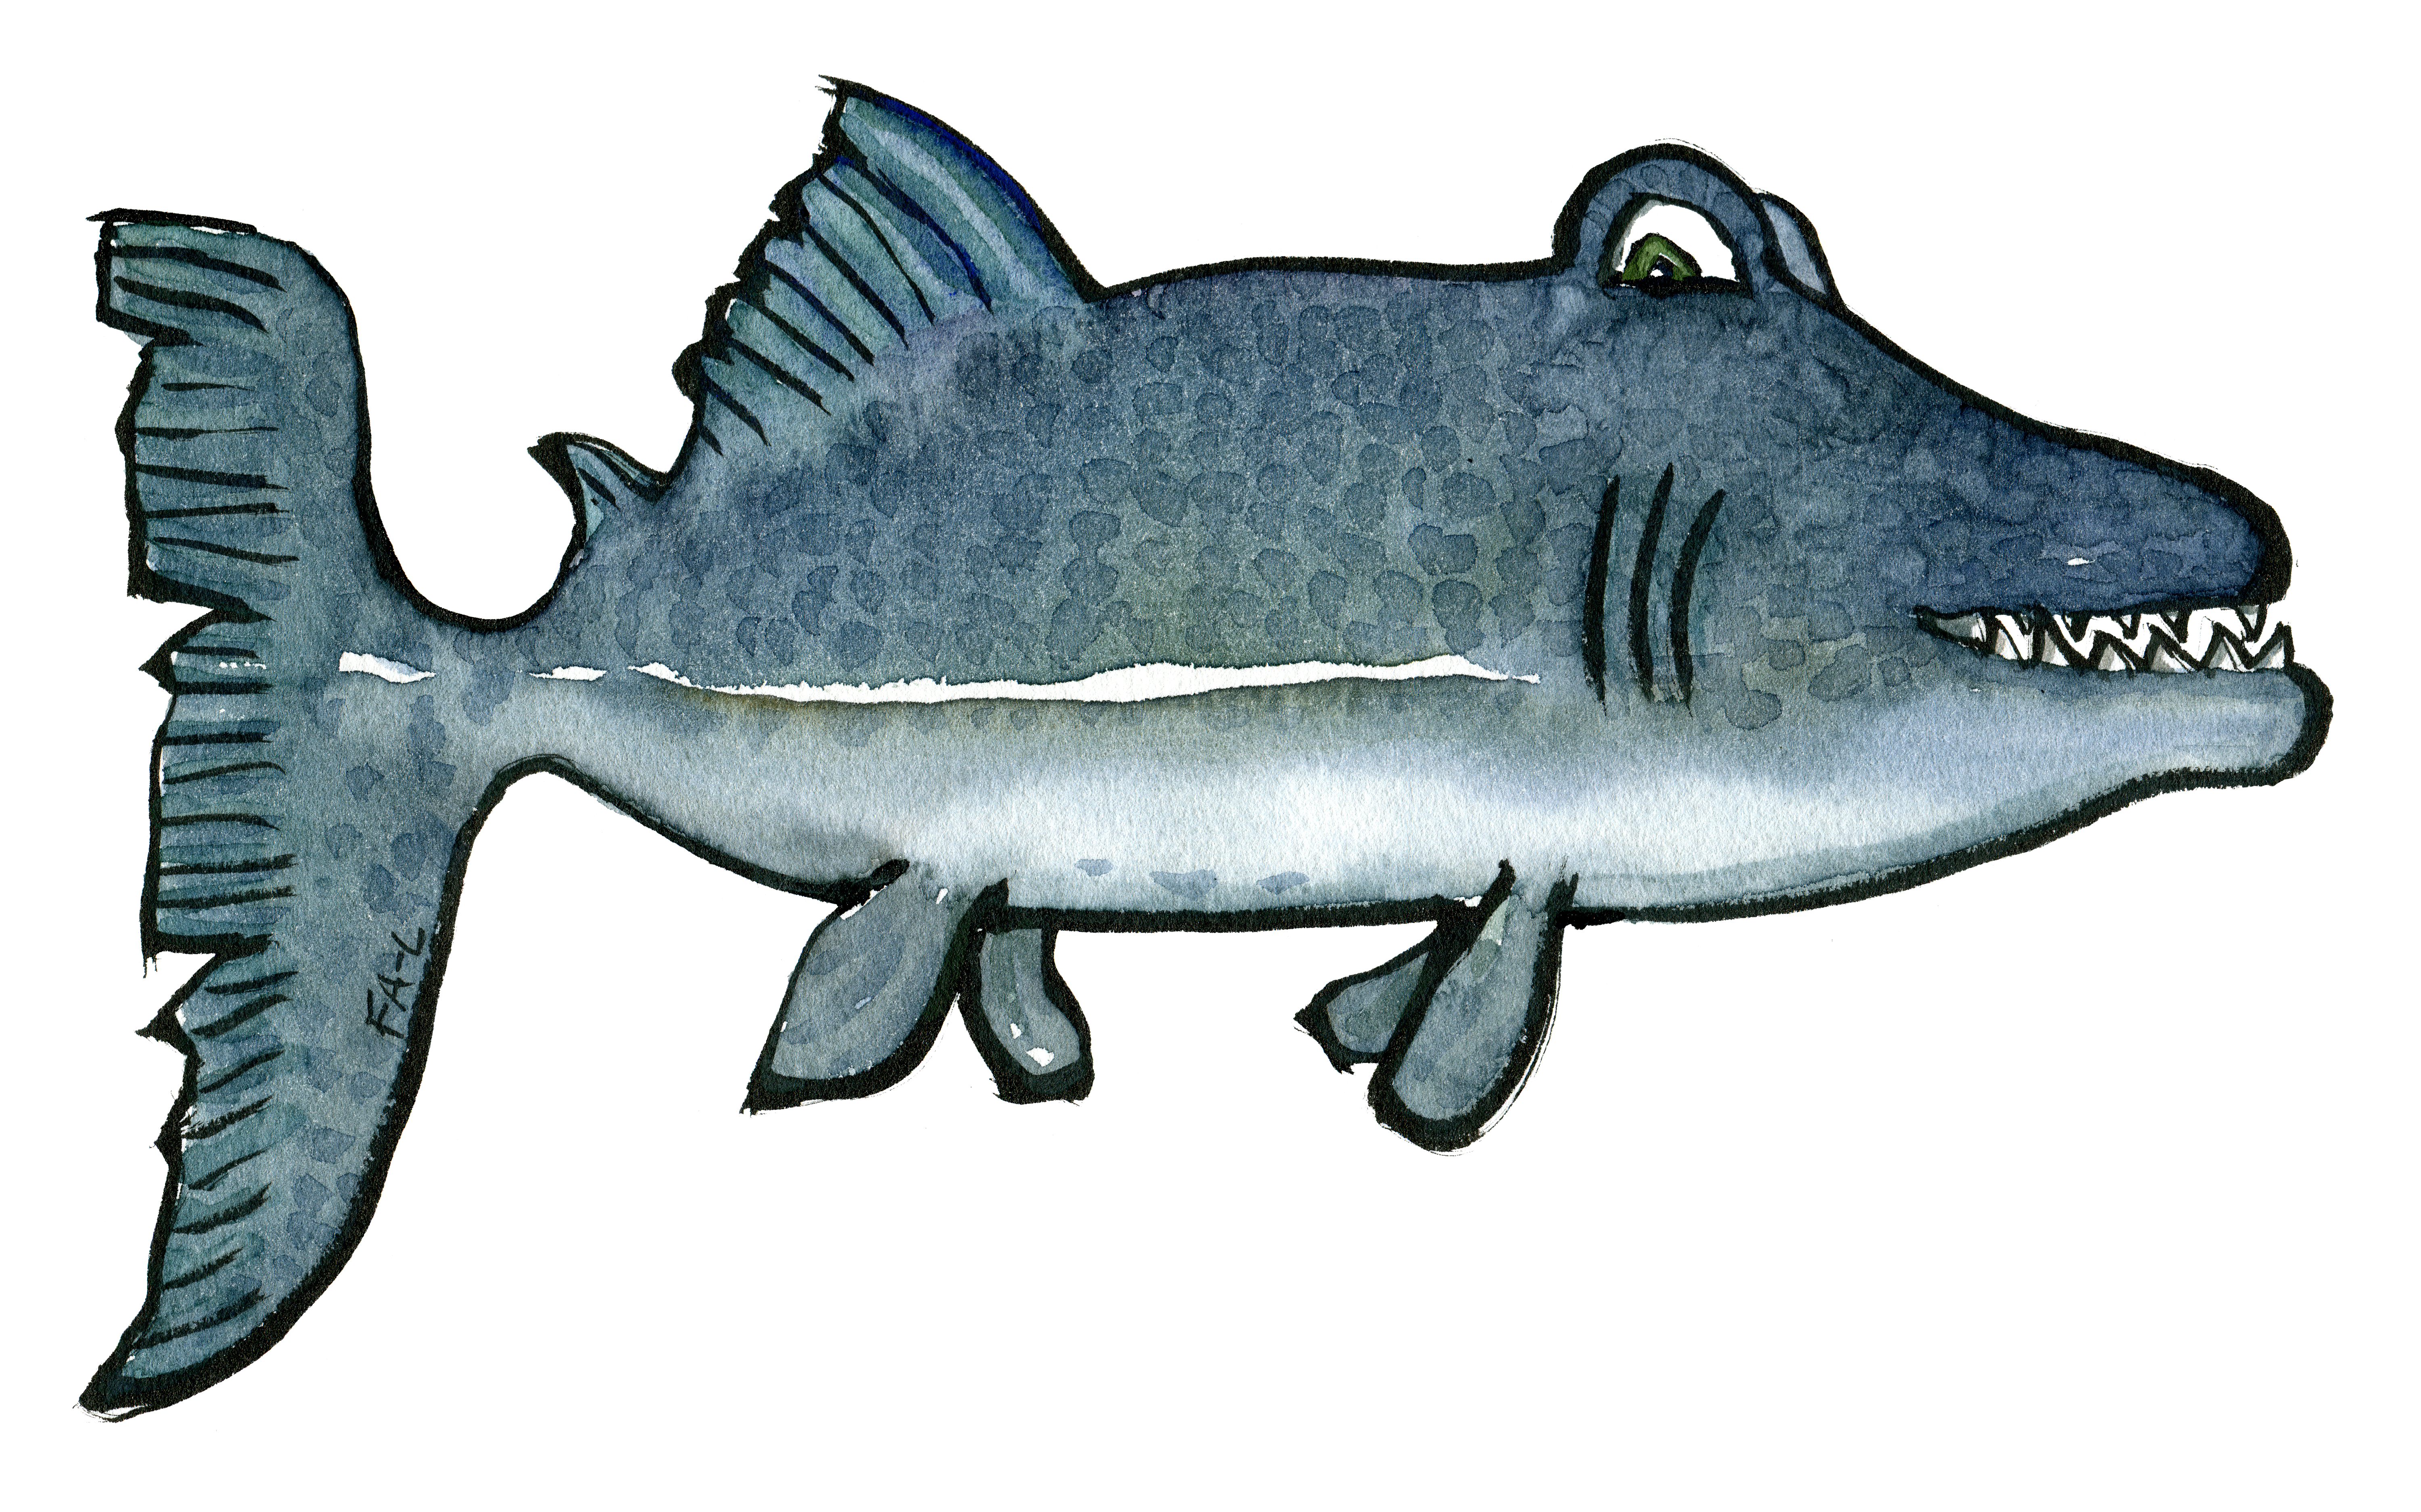 Drawing of a fish with sharp teeth